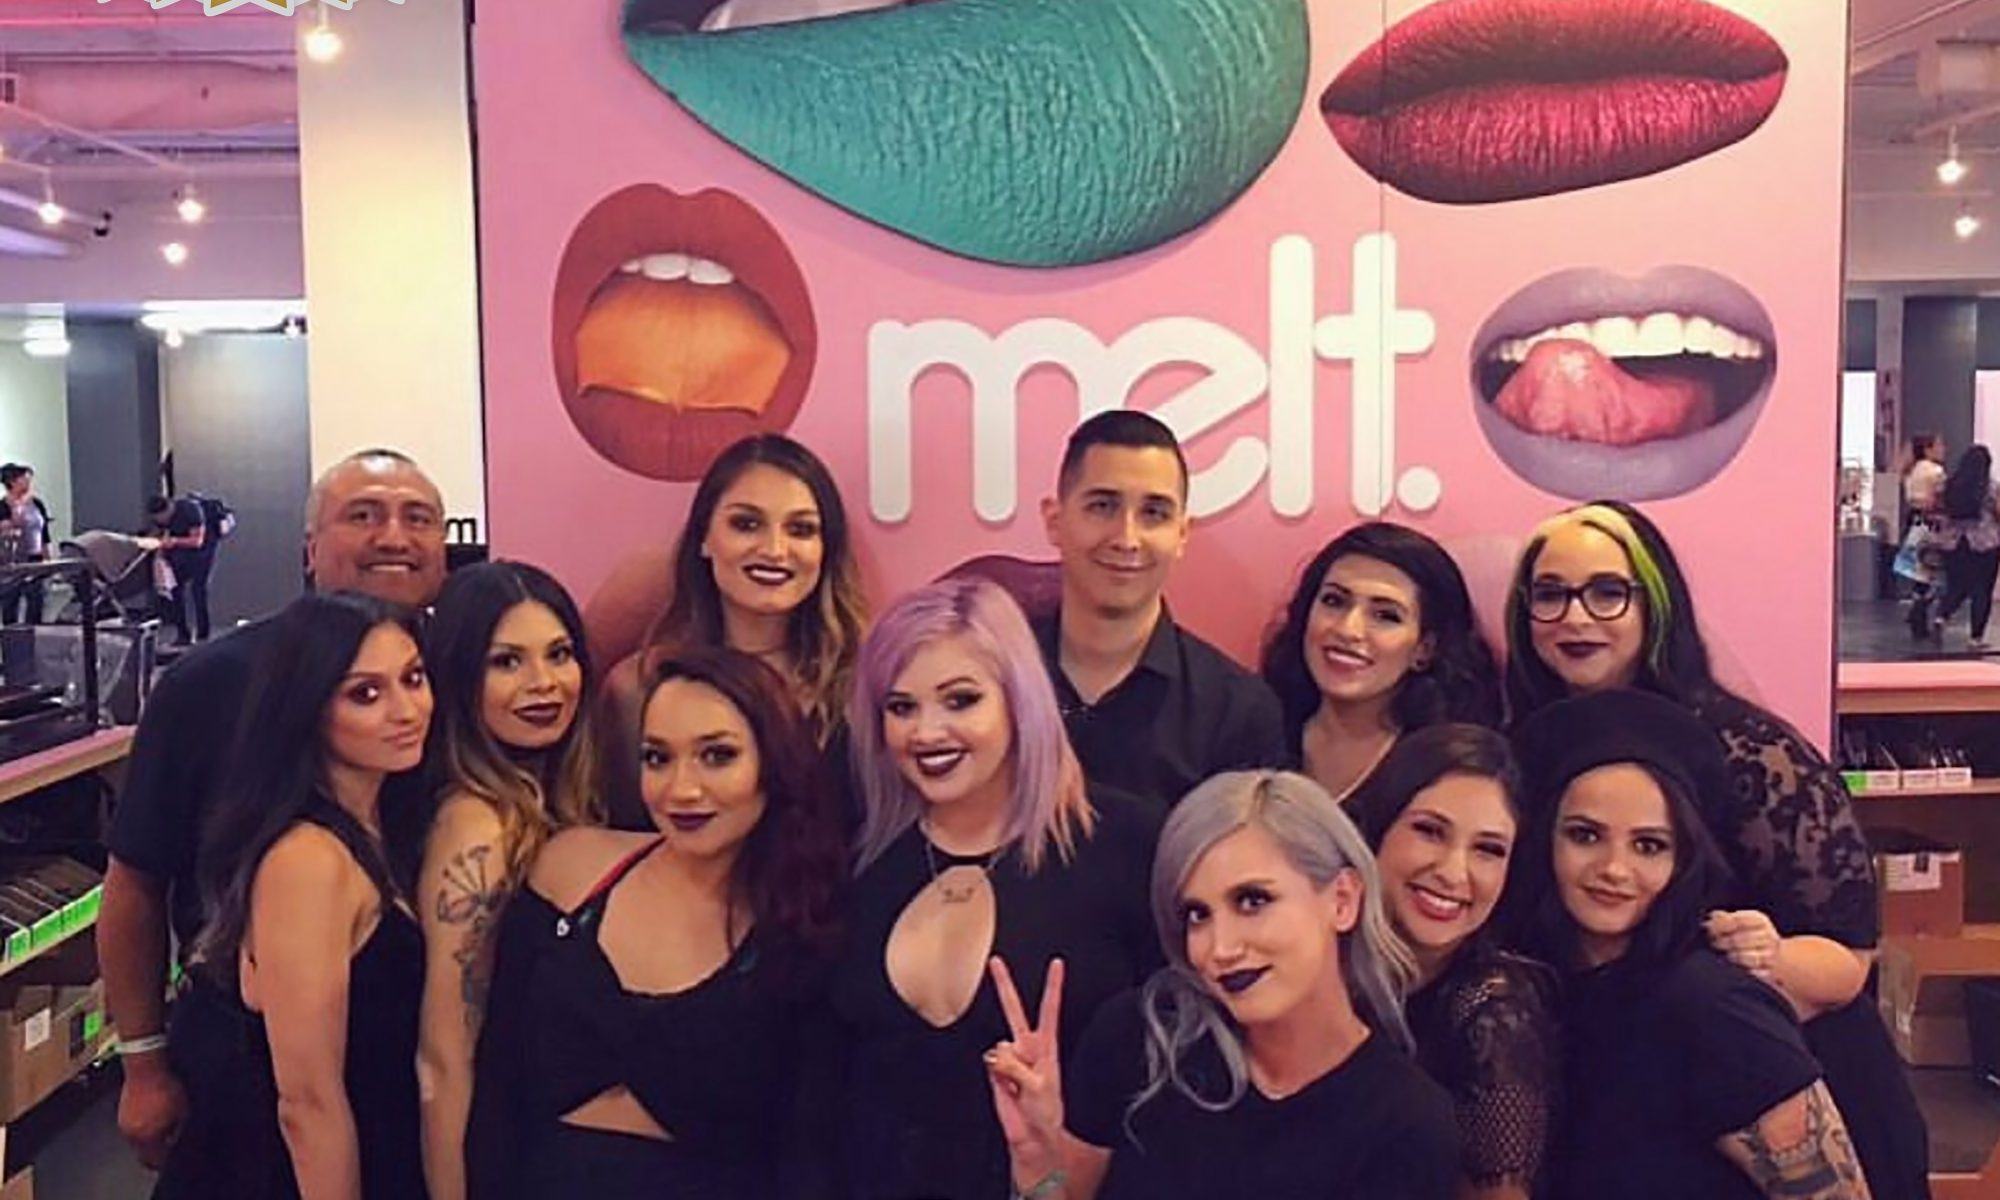 We can still look our best while sheltering in place. Especially for video calls and selfies. Put Melt Cosmetics' products to good use!